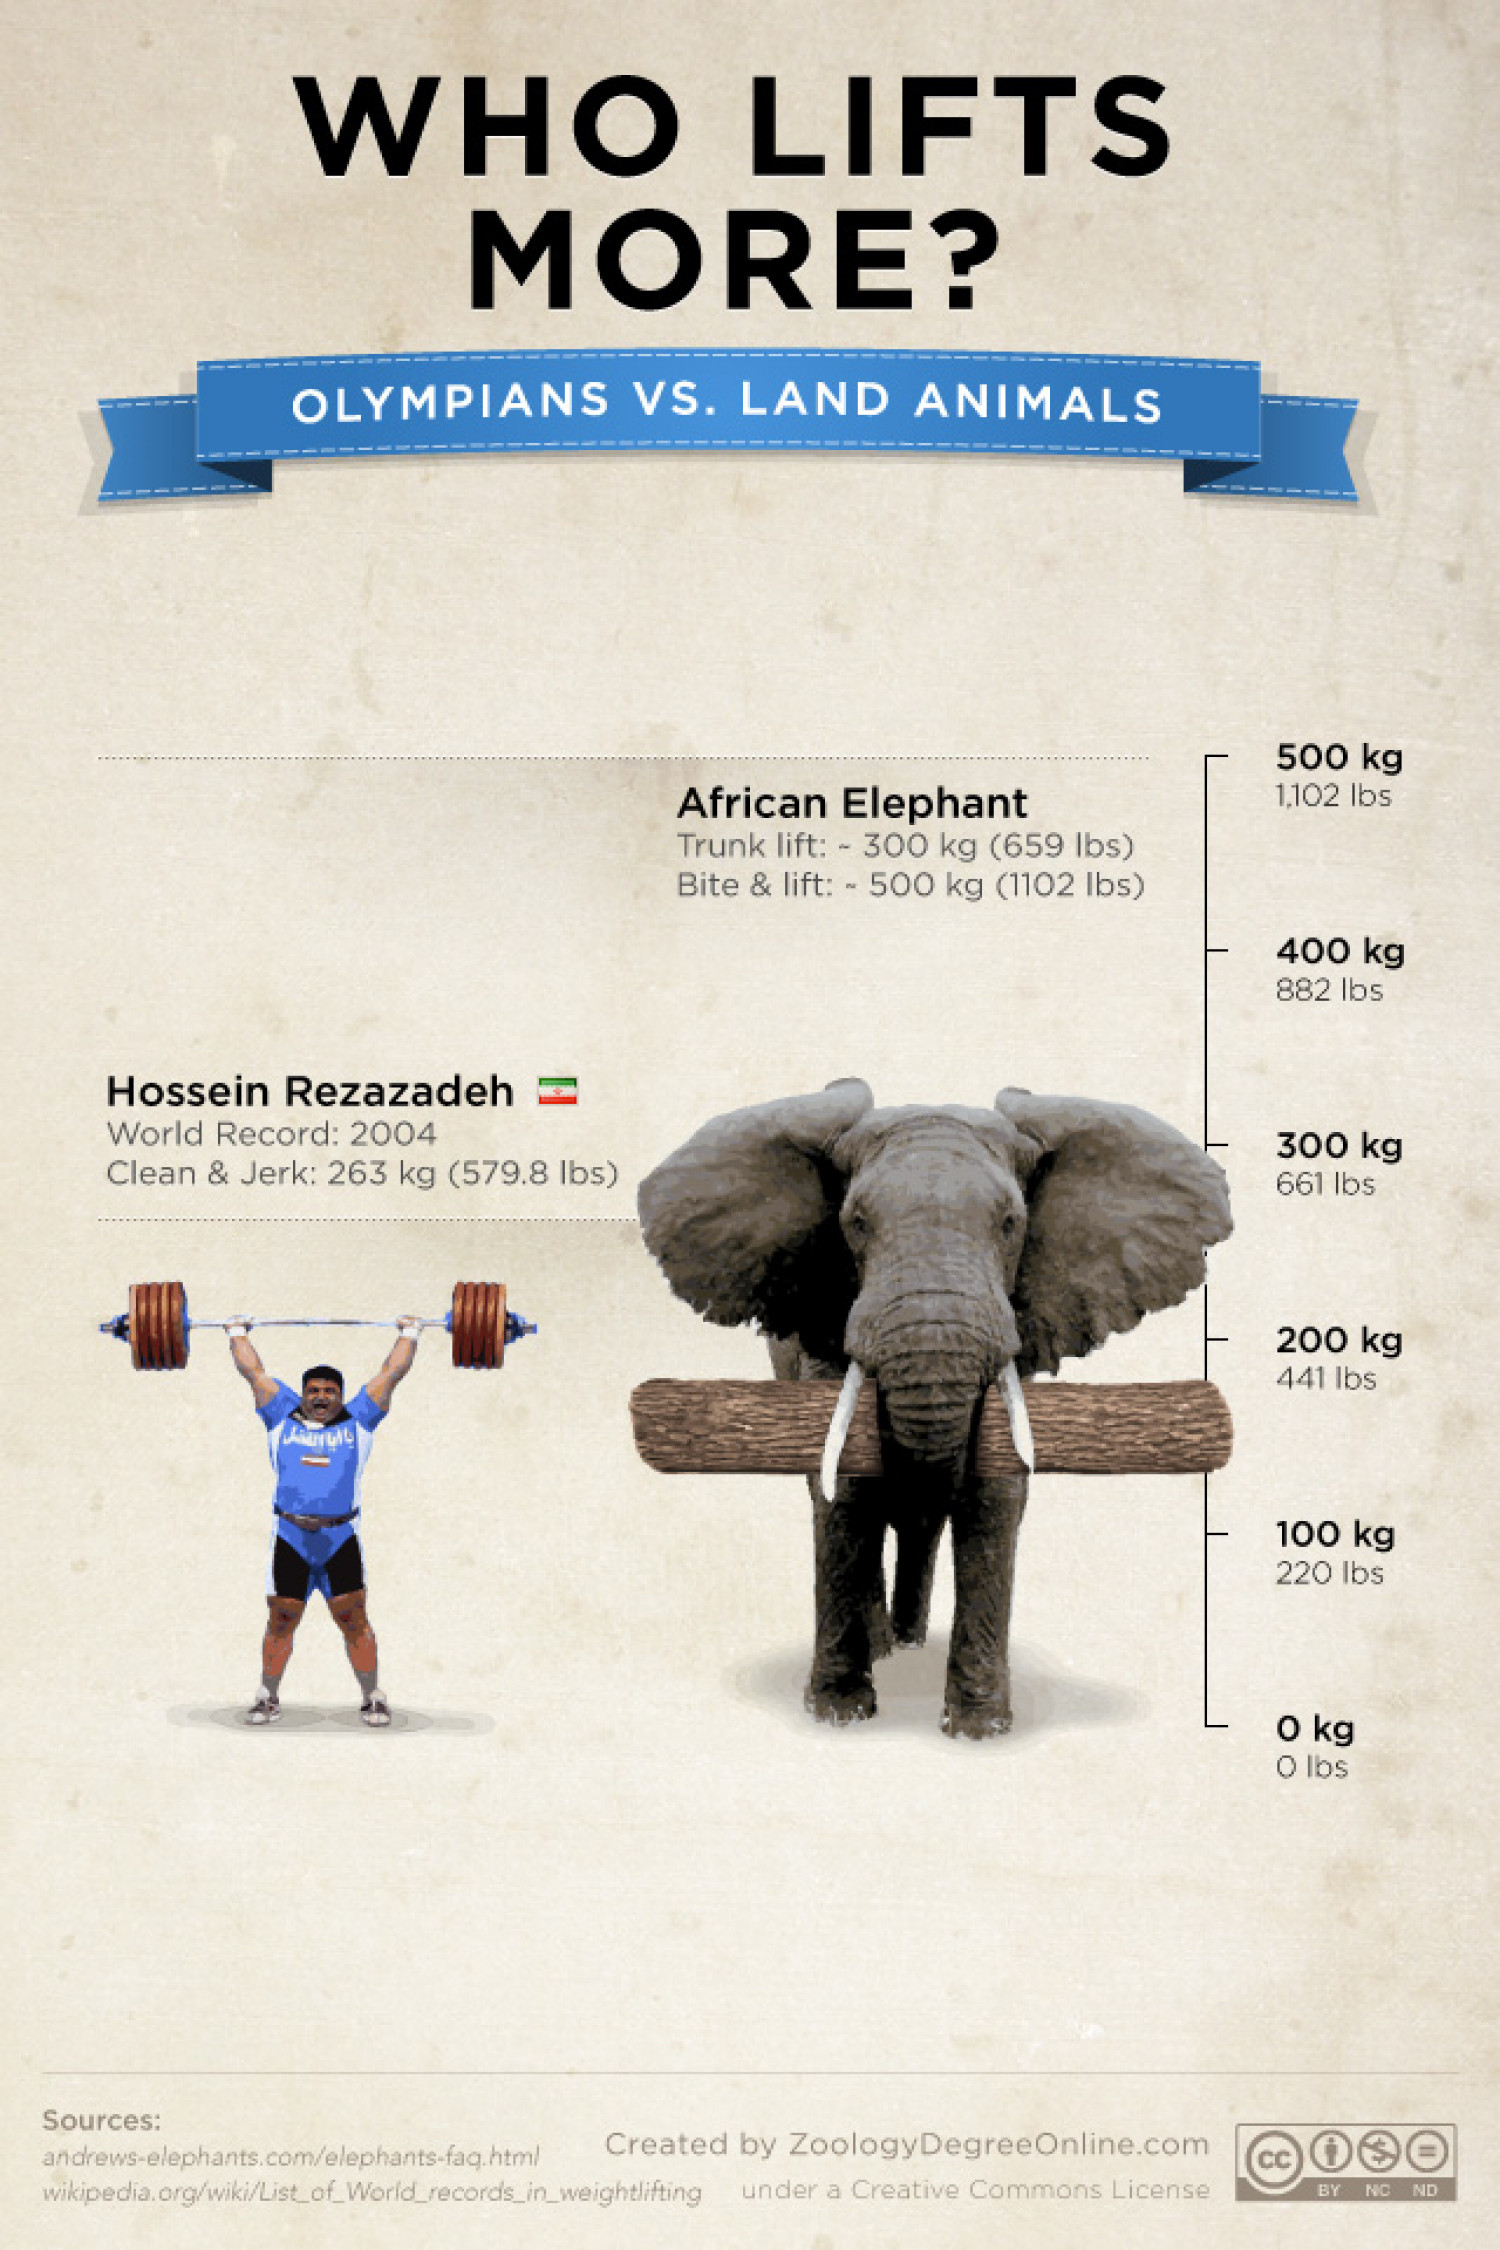 Animals Vs Olympians - Who Lifts More? Infographic